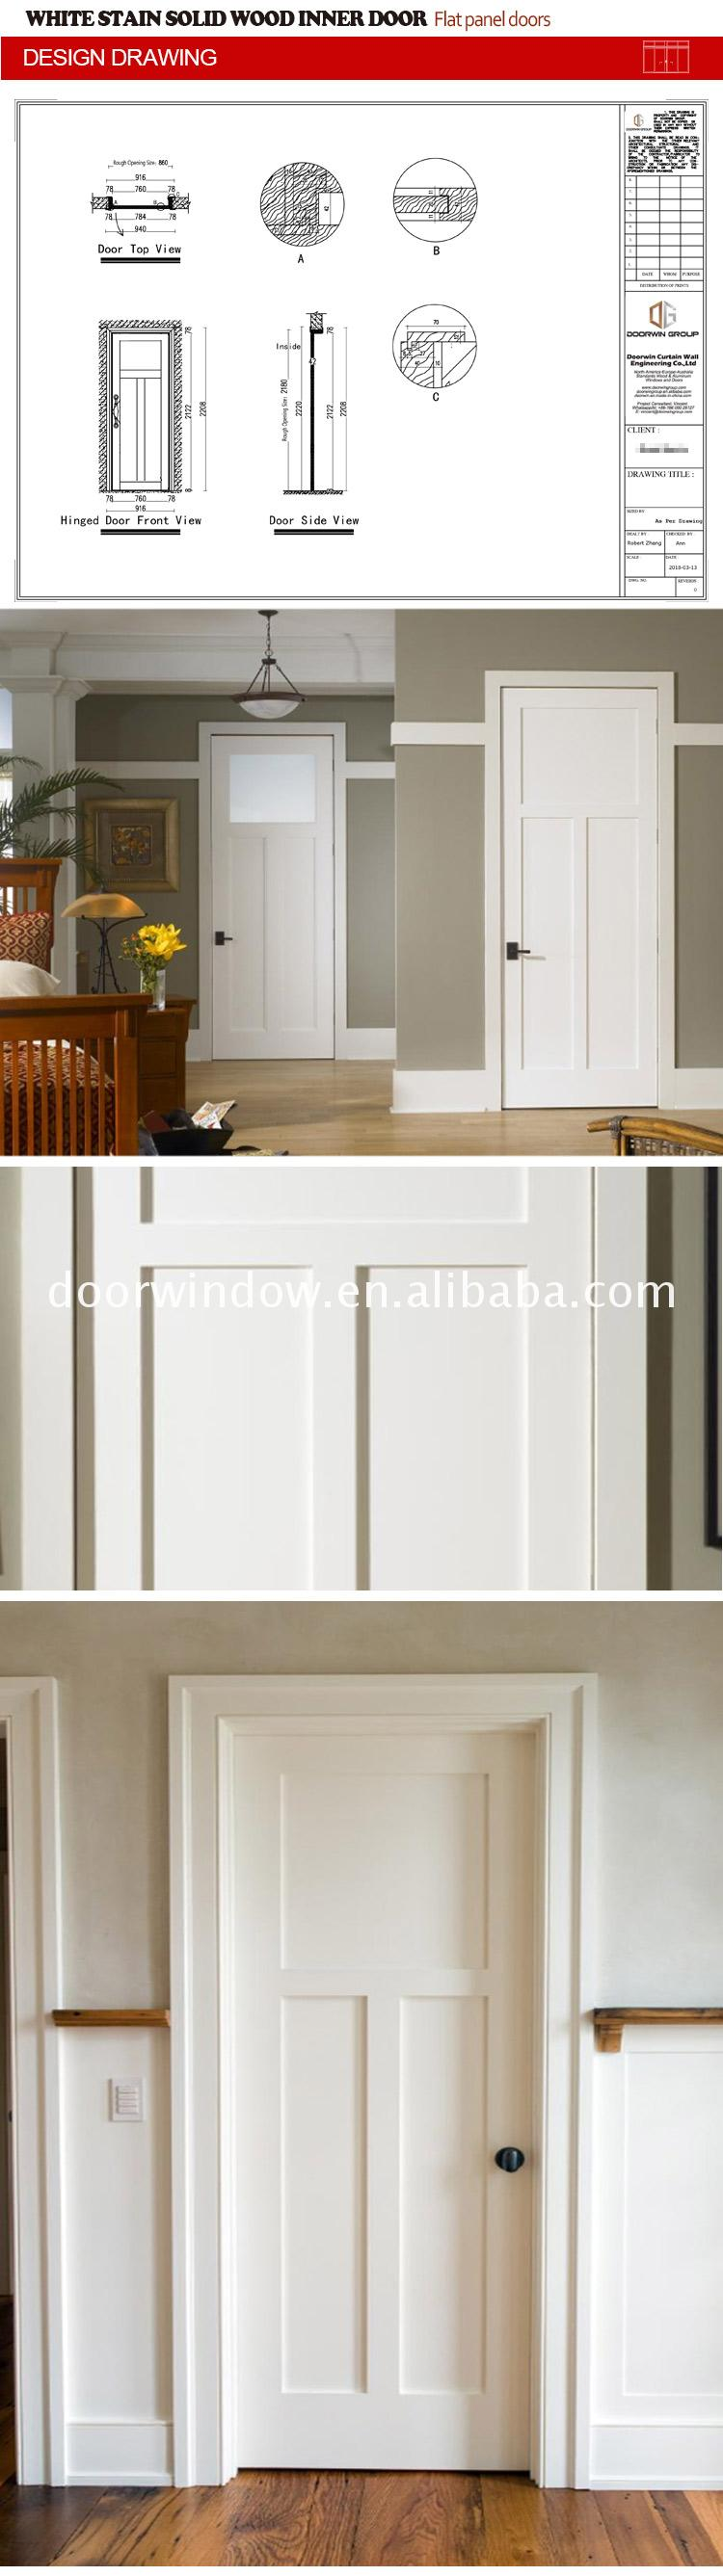 Japanese wooden doors interior door wood